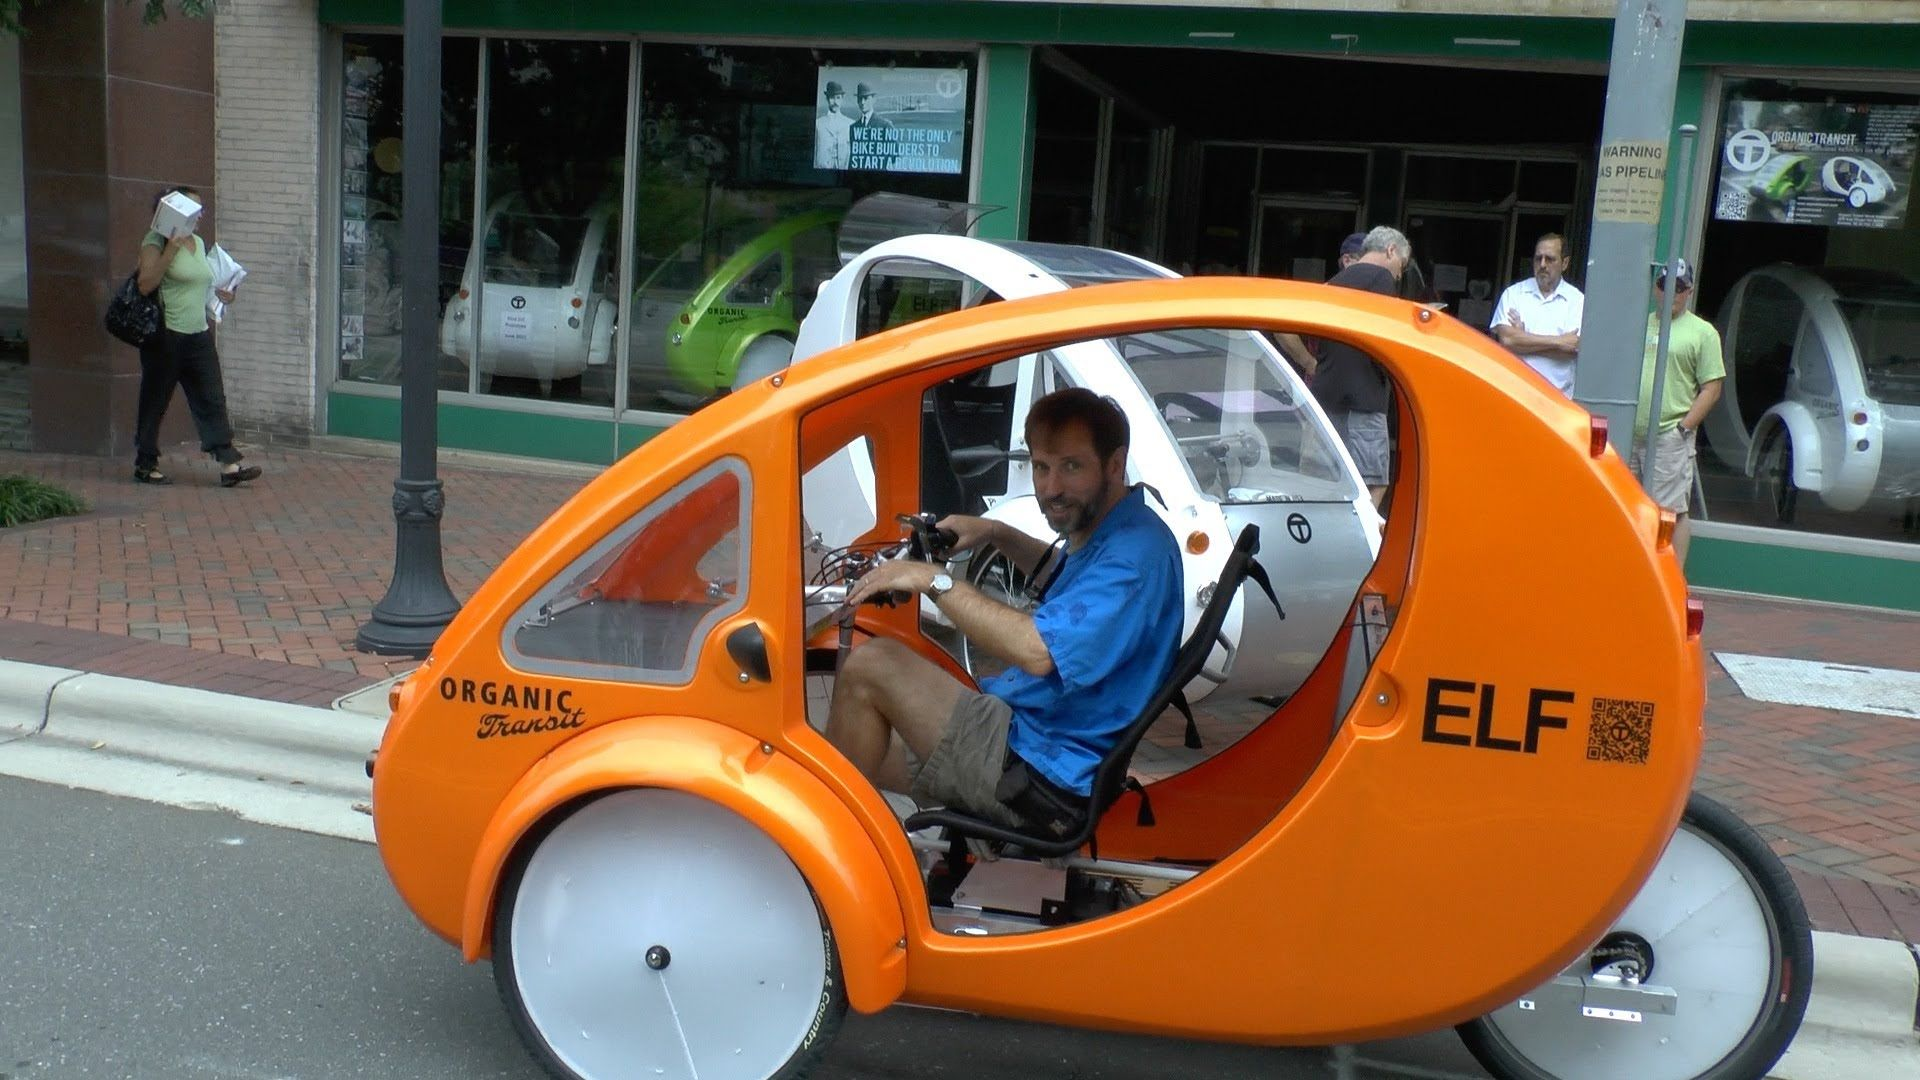 Enclosed Tricycle Is Half Bike Half Car Bicycles For Sale Tricycle Bike Technology